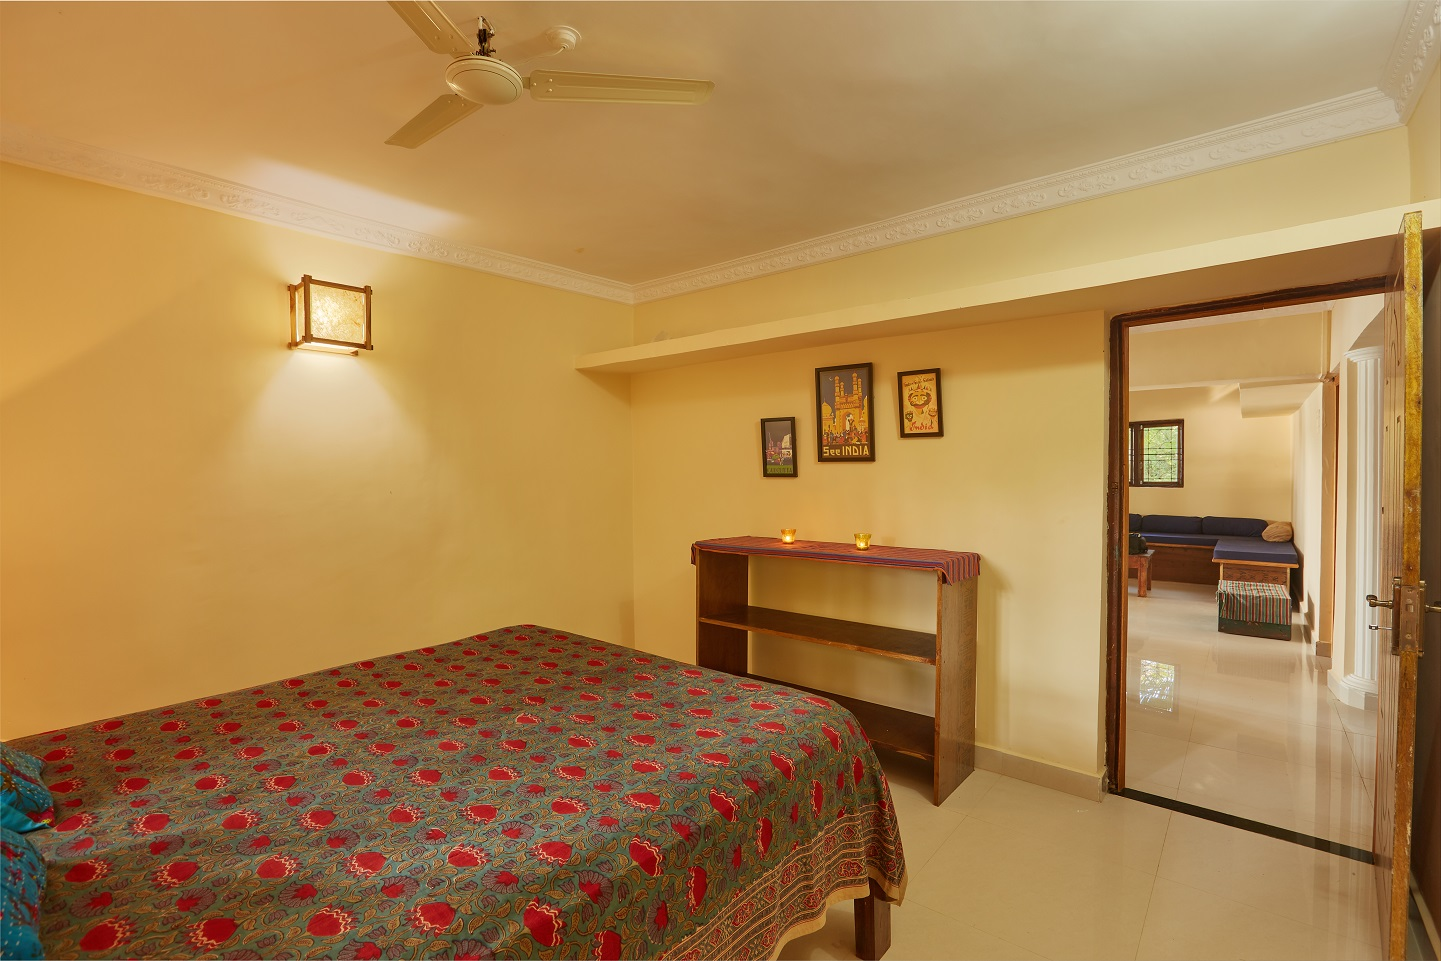 Two Bedroom Self-Service AC Apartment, Talpona, Goa bedroom 1